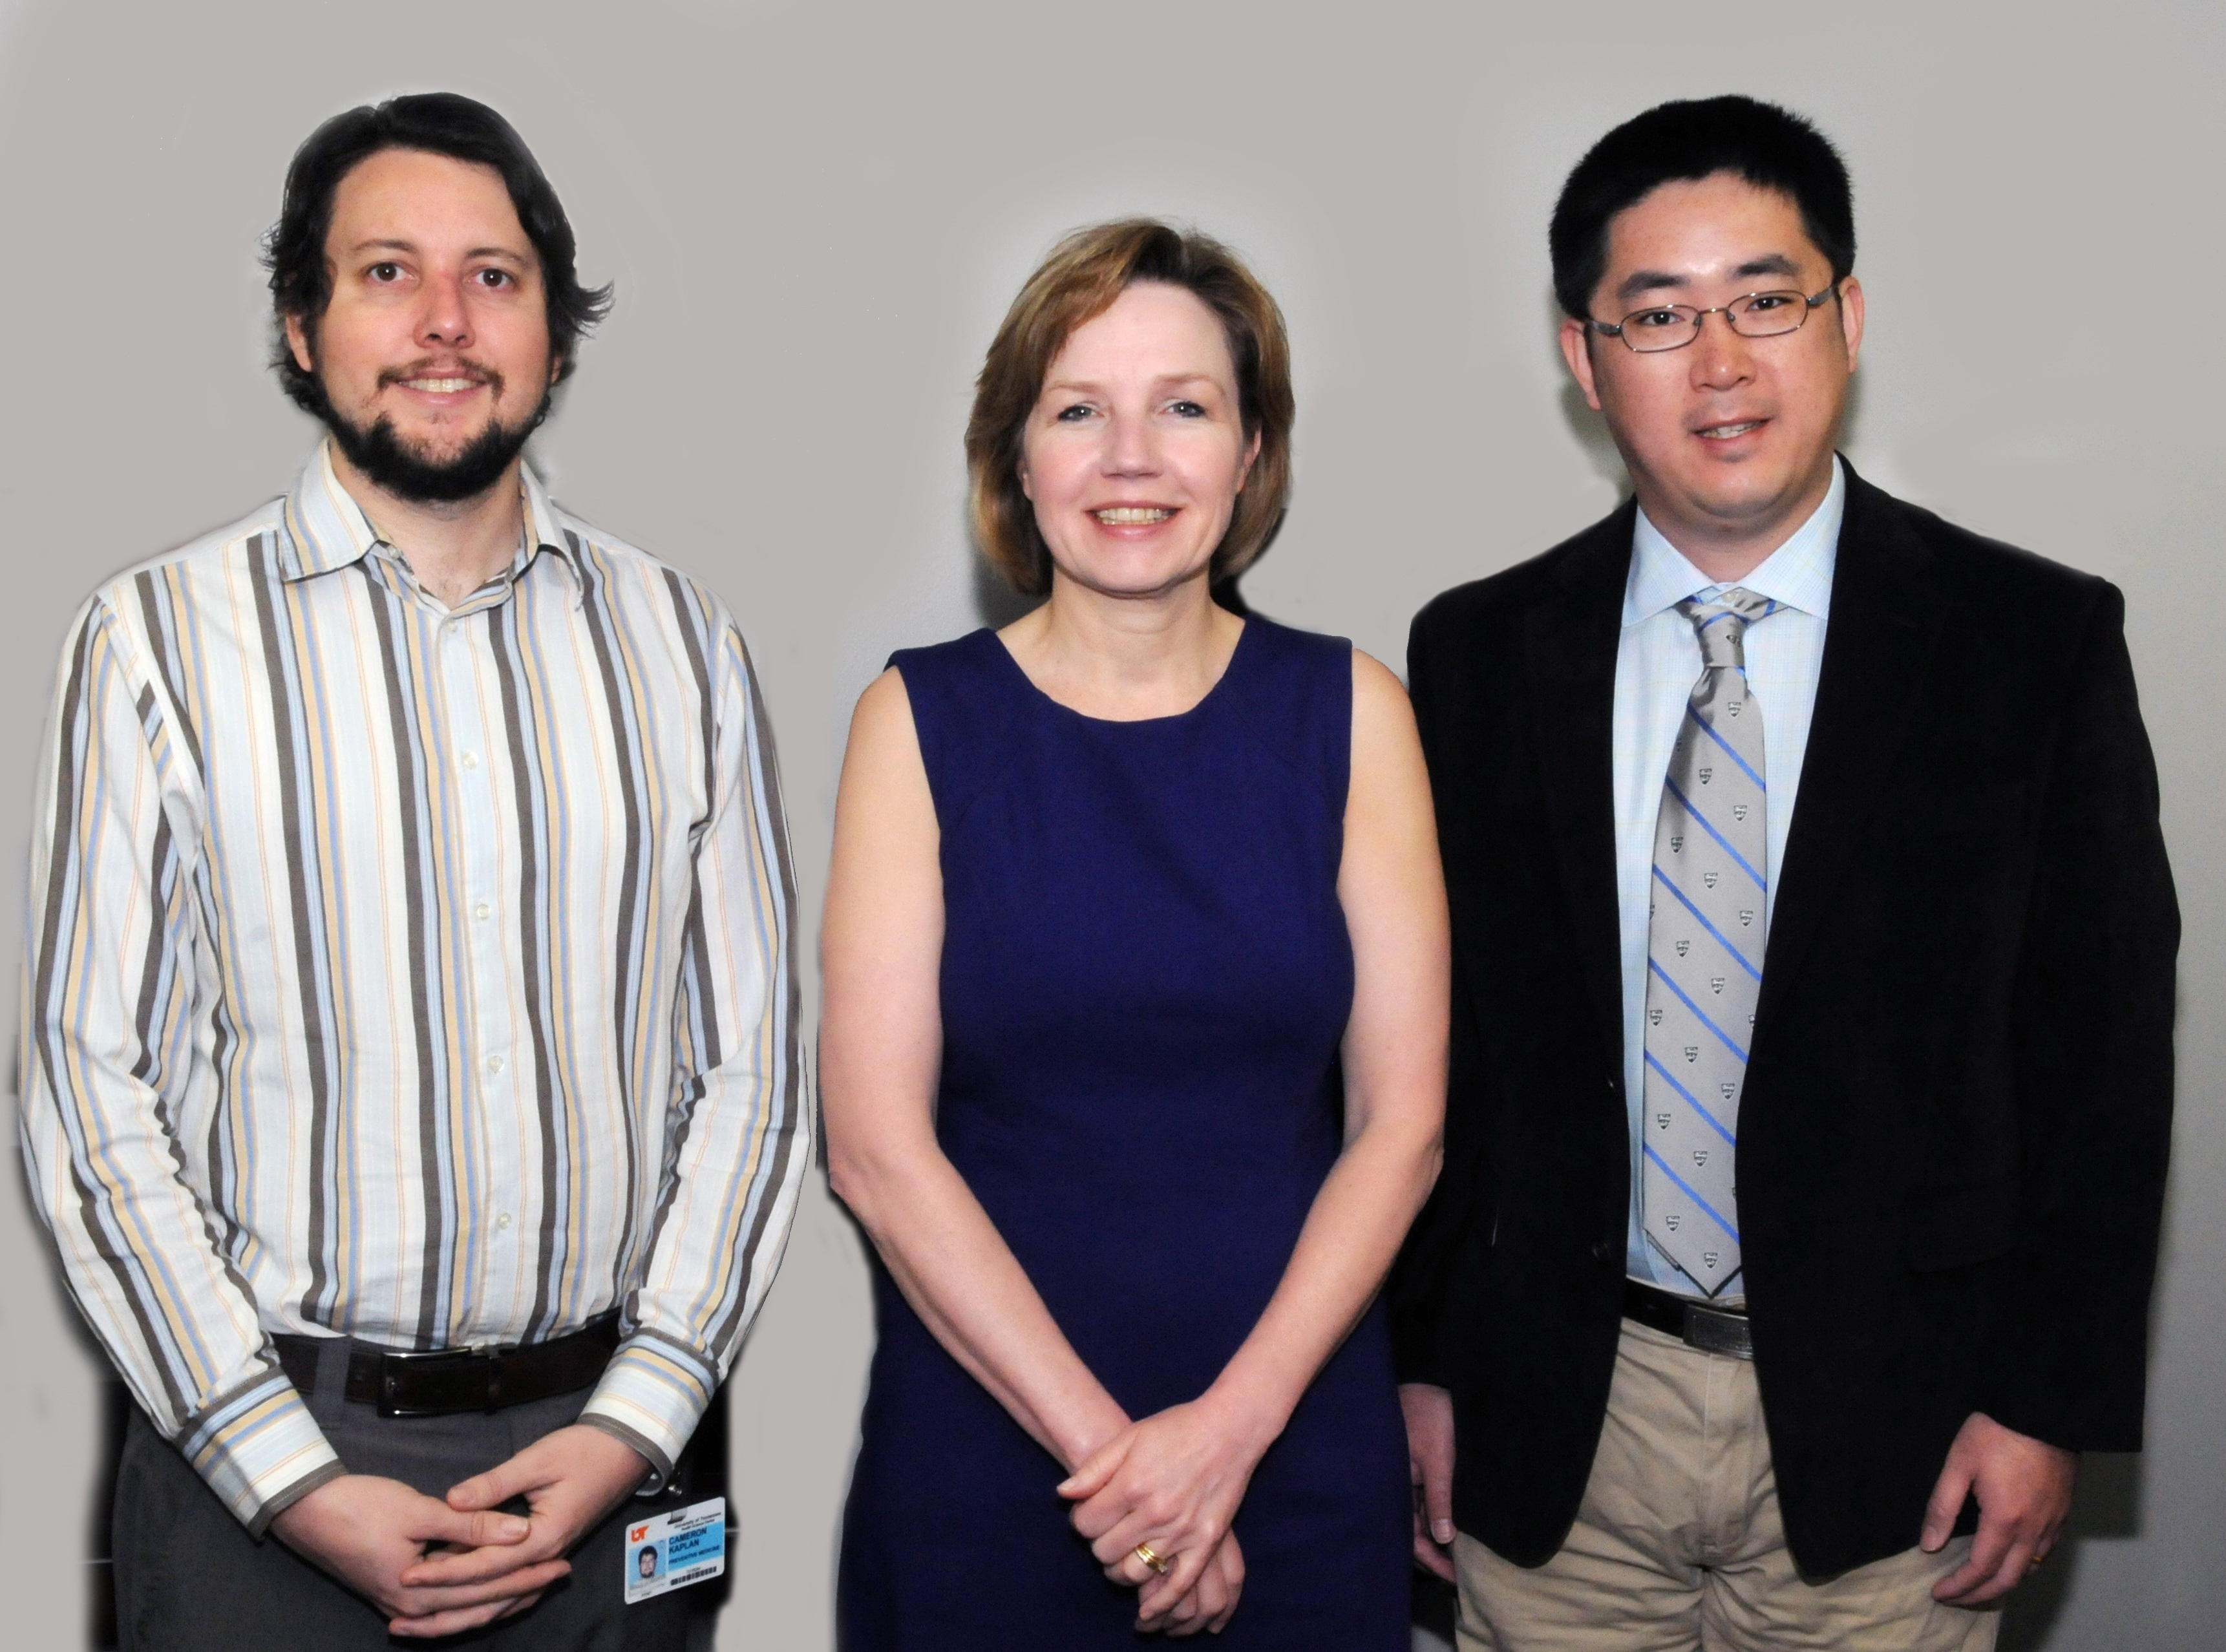 A $749,998 grant from the Agency for Health Care Research and Quality will allow Dr. Teresa Waters, pictured with team members Dr. Cameron Kaplan (left) and Dr. Tao Li, to examine the effects of Medicare hospital readmission policies.